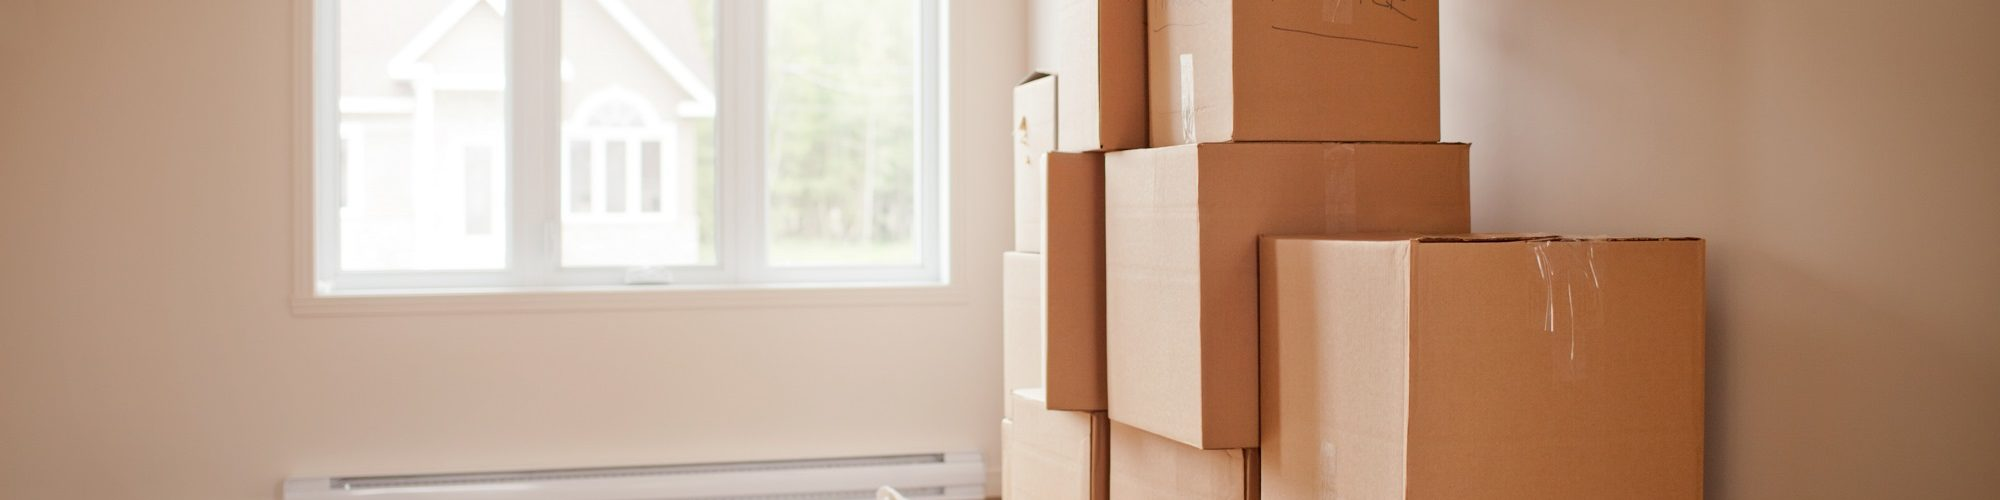 How to Move - Moving Tips